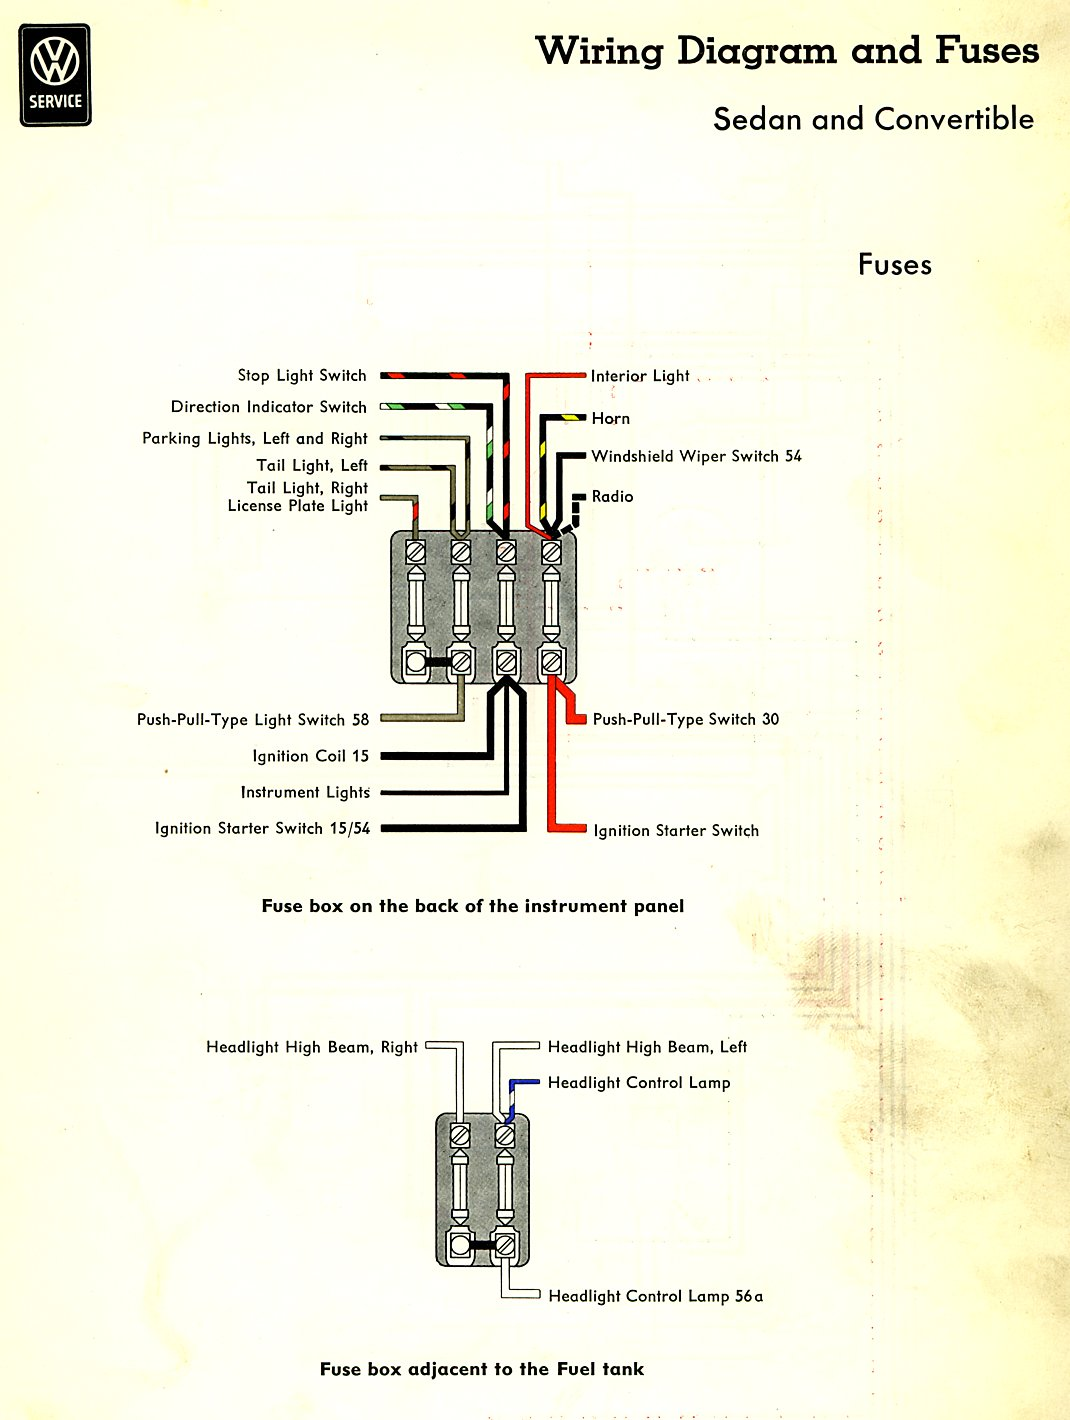 Type 1 Wiring Diagrams 1973 Chevrolet Heavy Truck Diagram